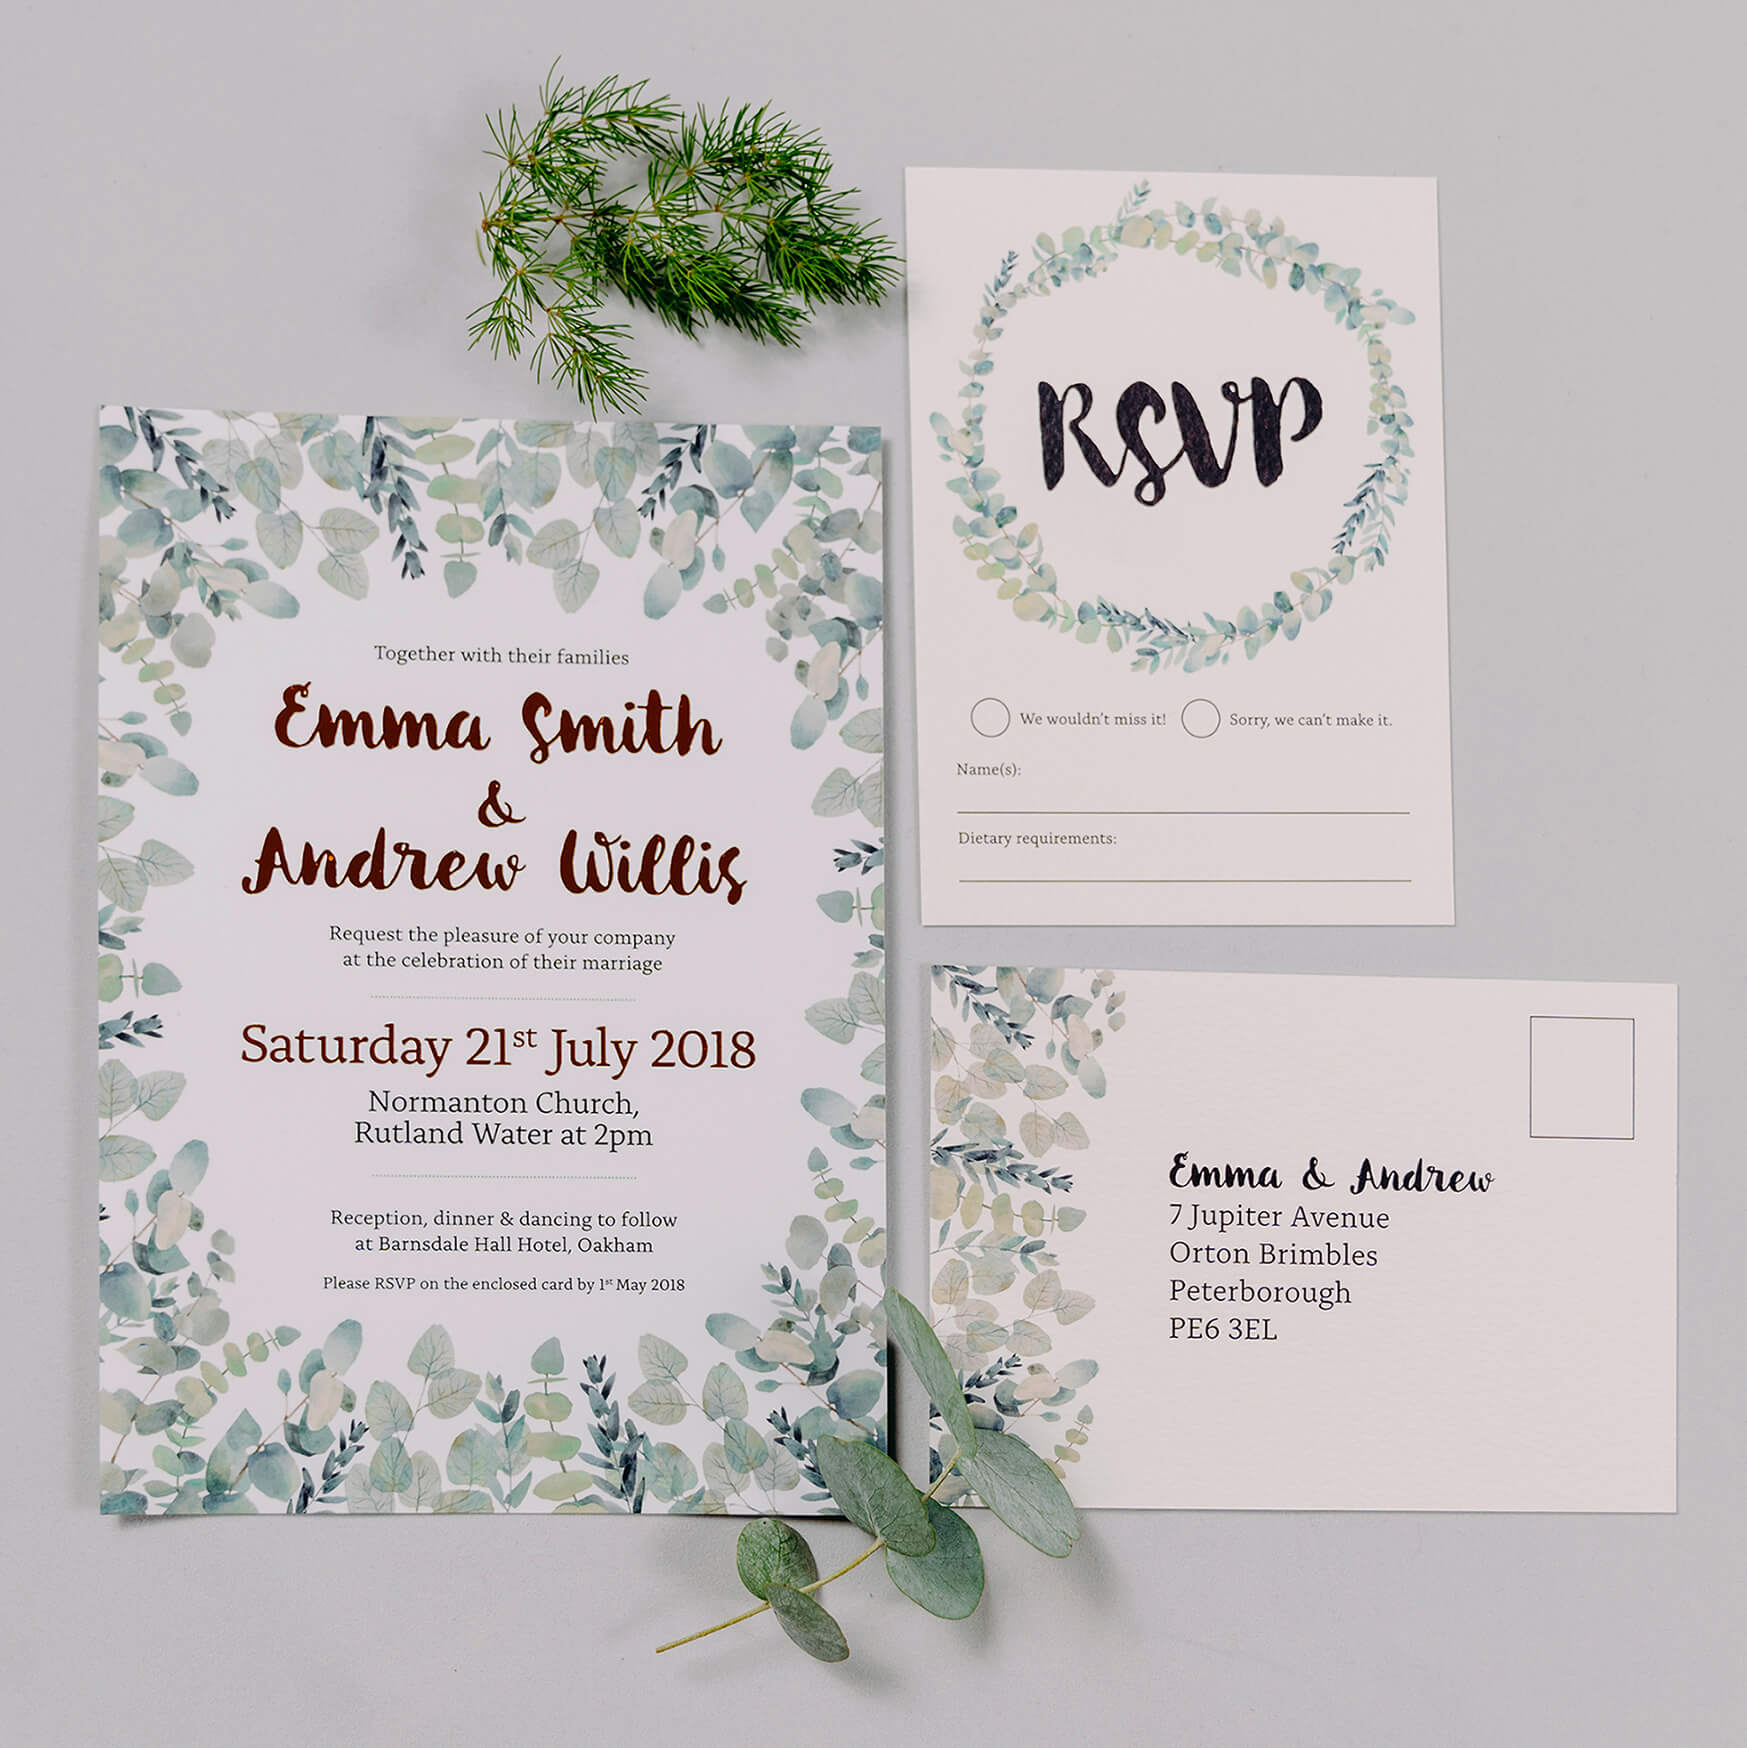 Rustic Green & White Eucalyptus Wedding Invitation With Copper Digital Foil & RSVP Card